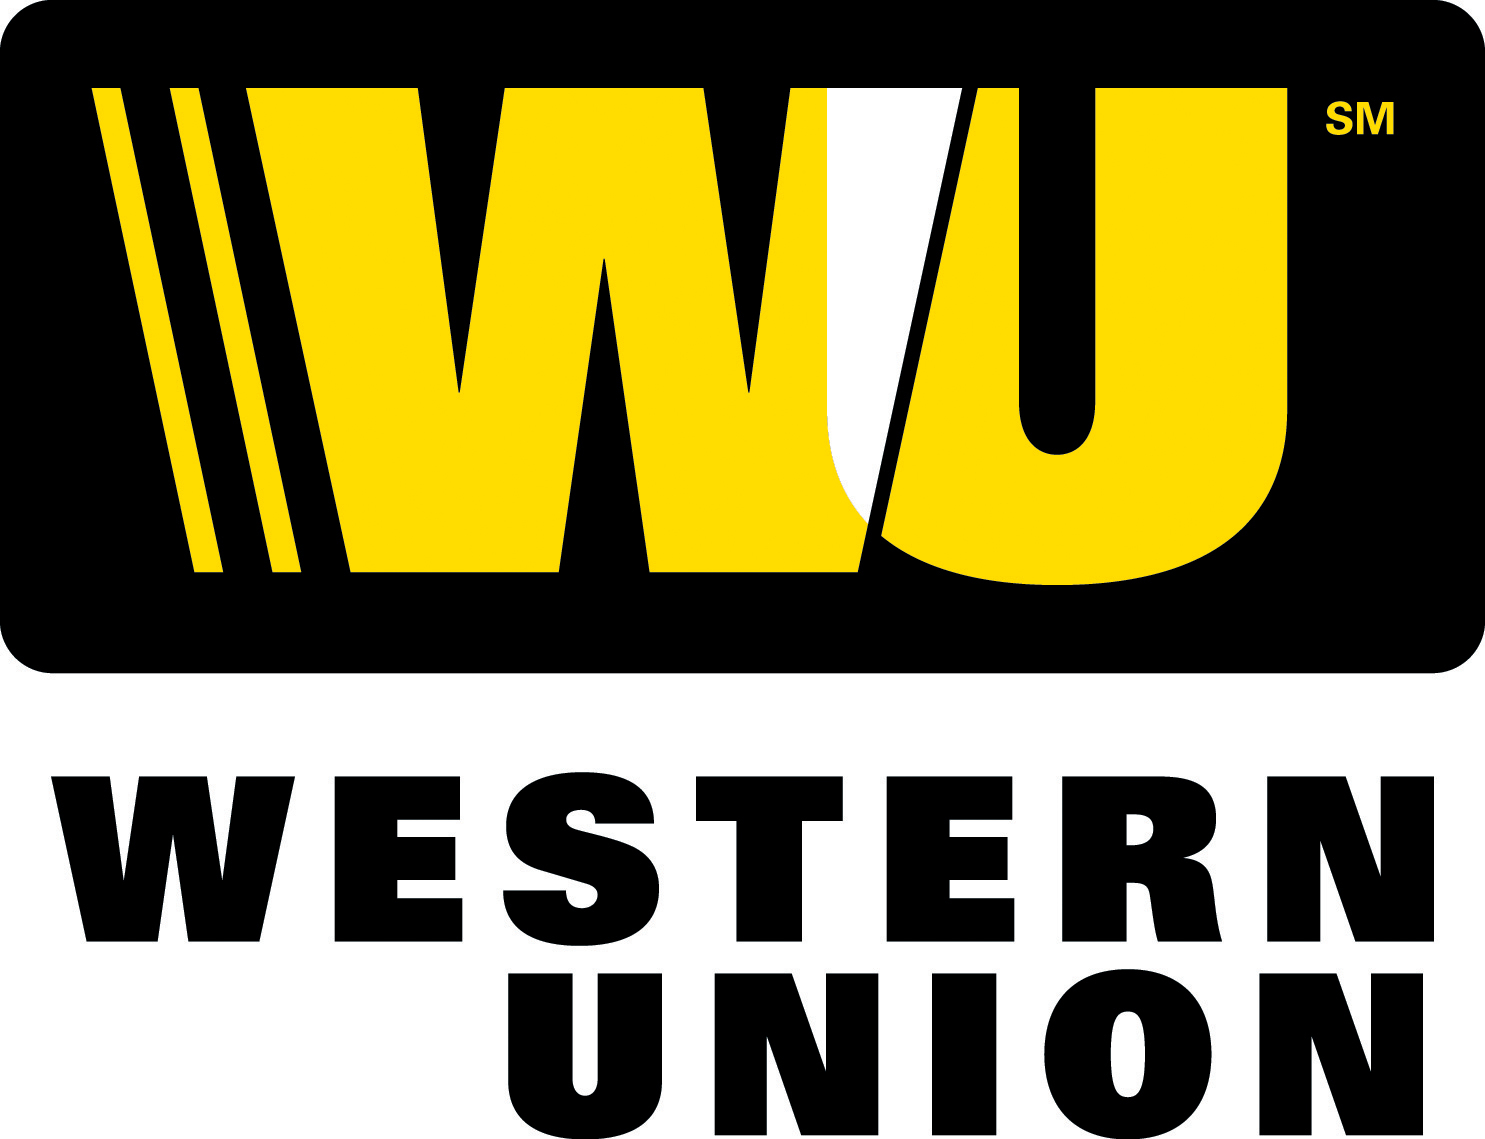 weater union